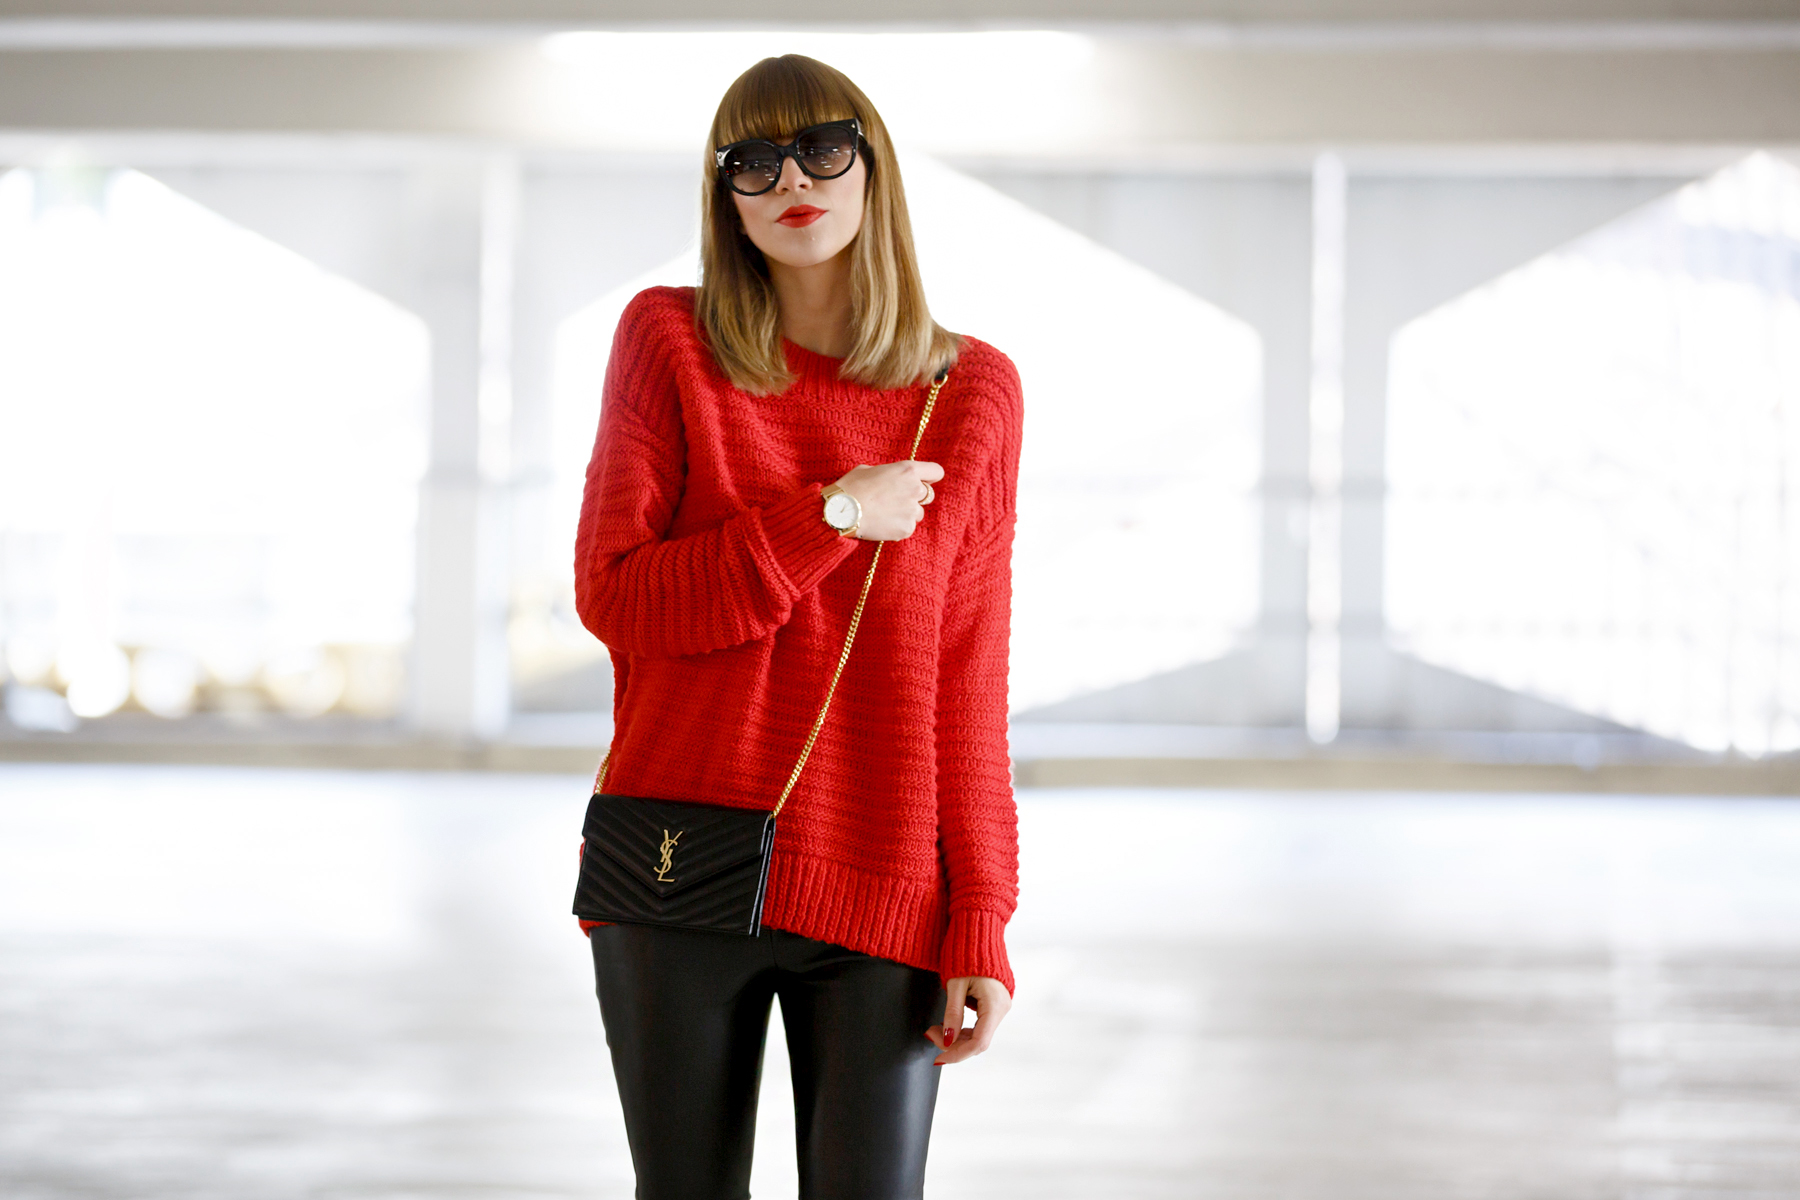 red pullover black leather pants golden details rosefield watch ysl saint laurent paris monogram bag prada celine sunglasses cat eye cute french winter look ootd outfit styling cats & dogs blog ricarda schernus fashionblogger germany dusseldorf 4